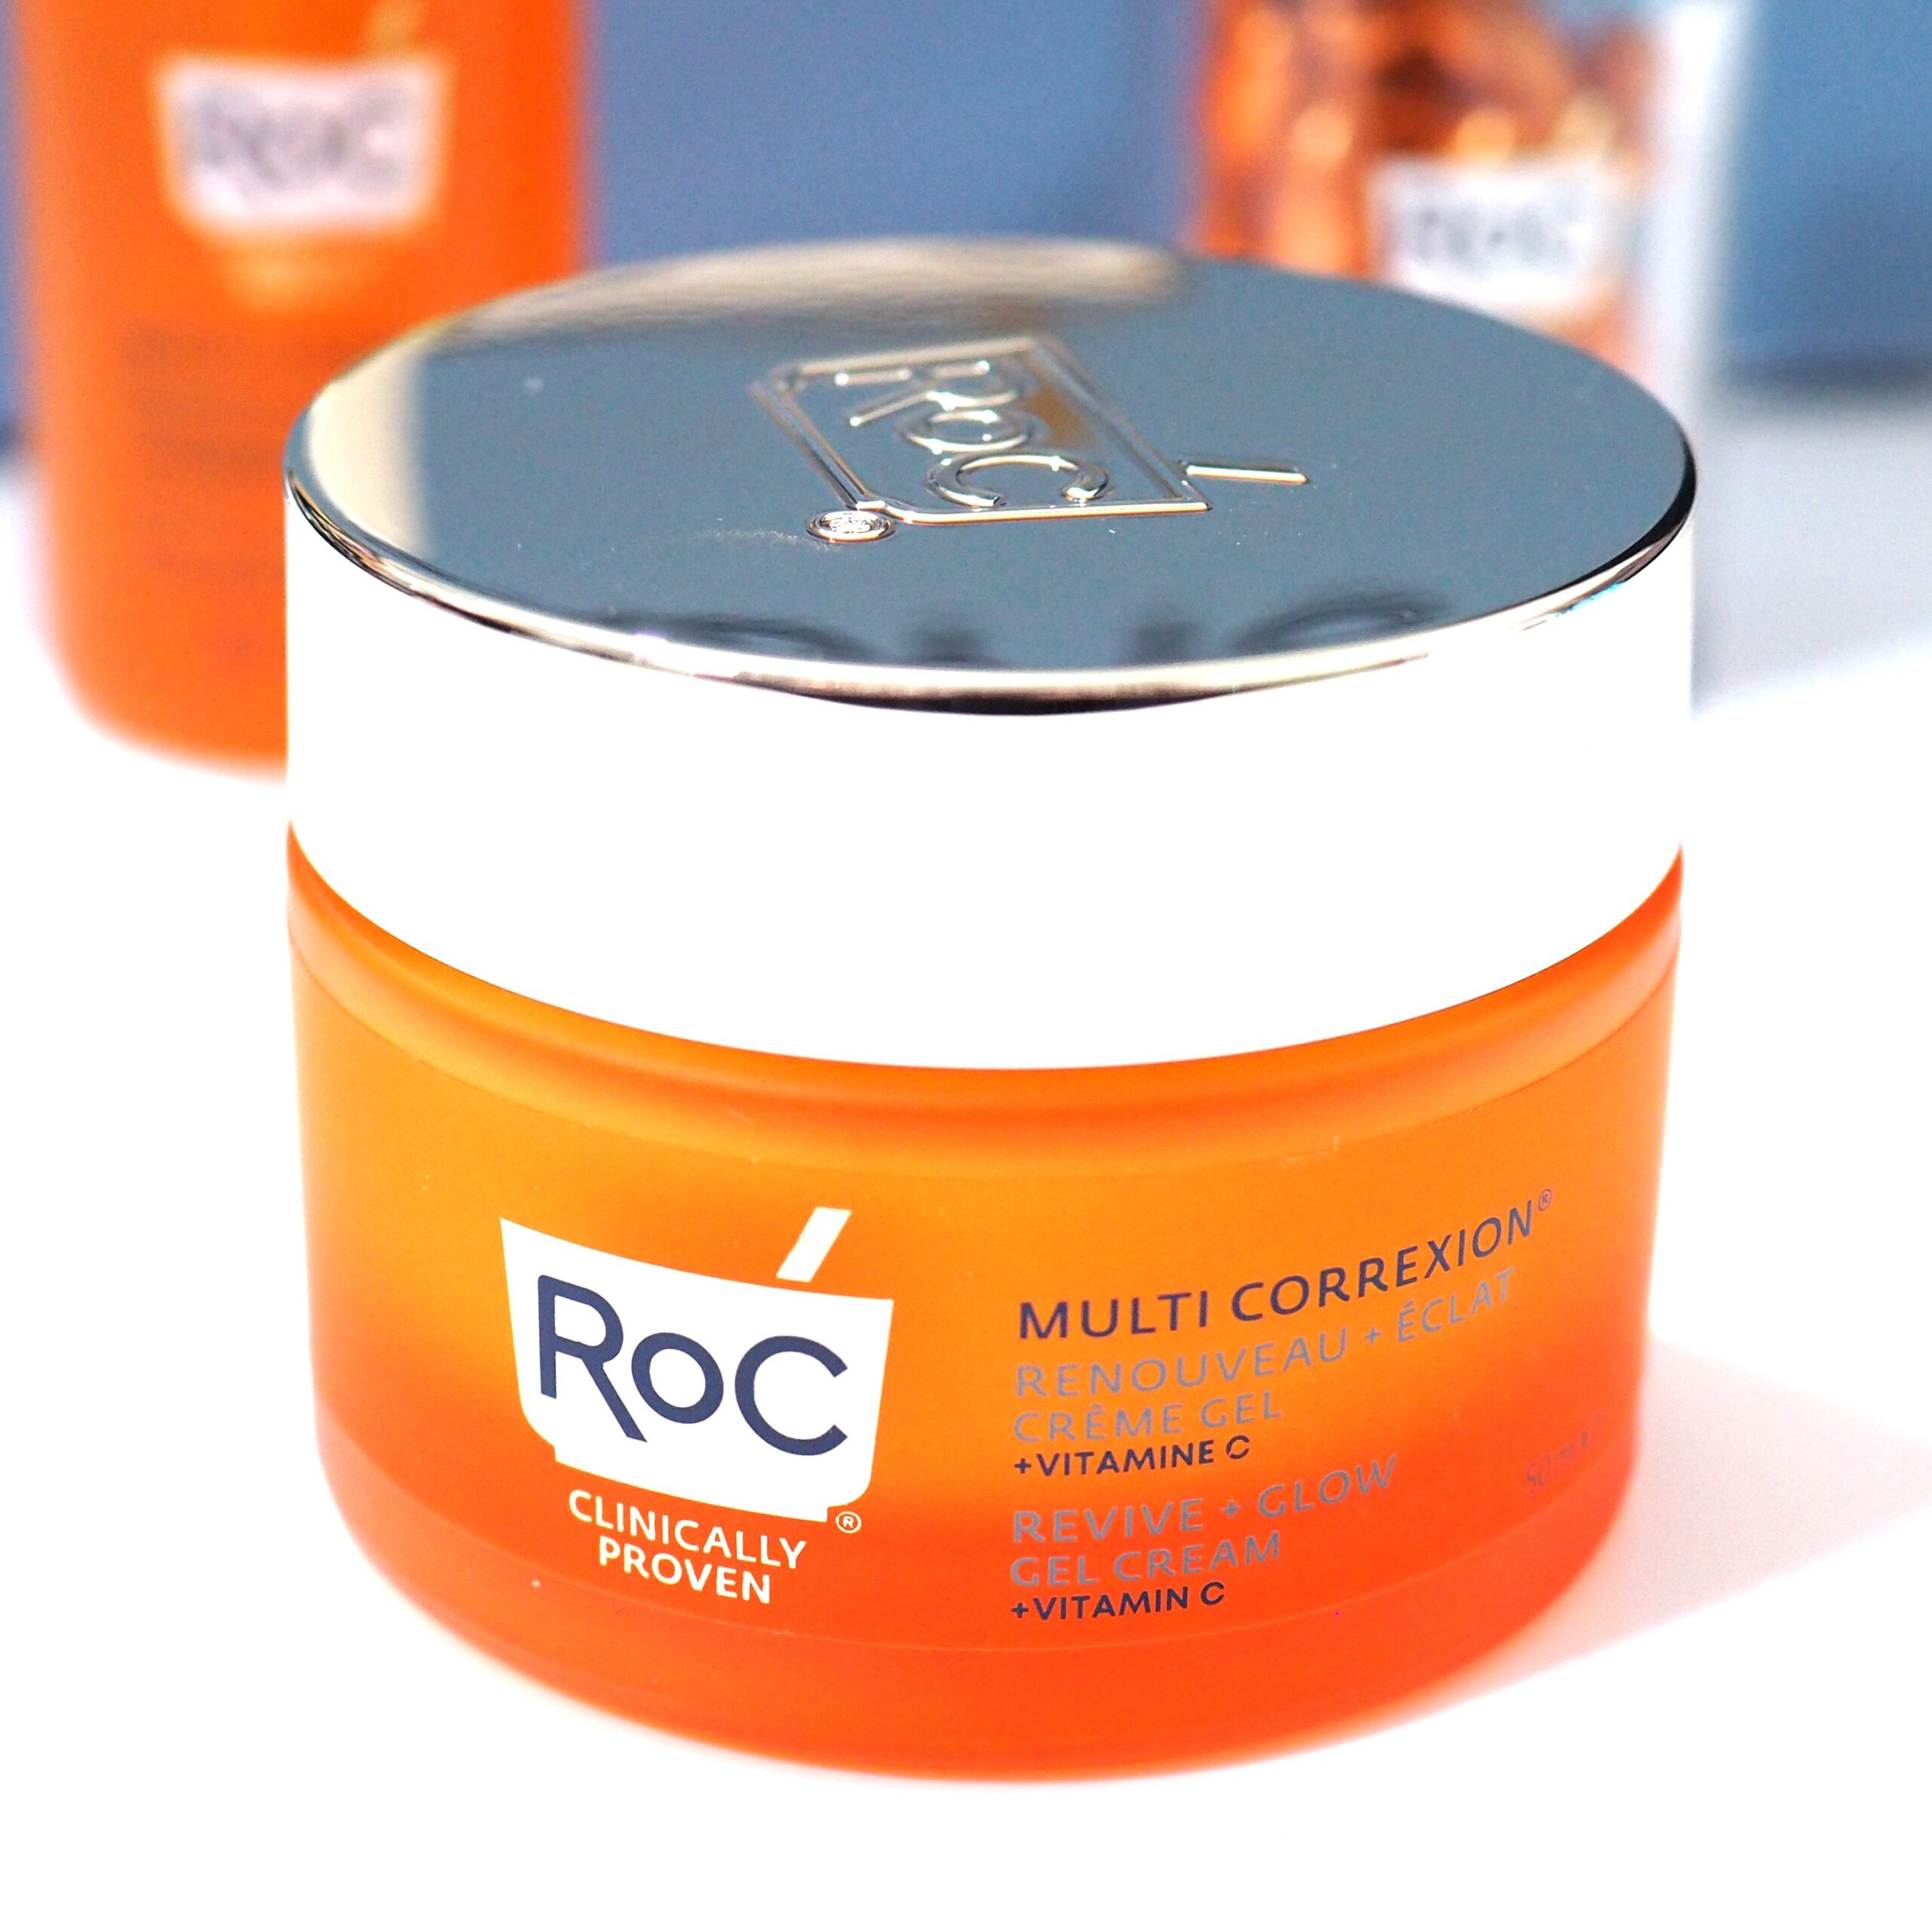 RoC Multi Correxion Revive and Glow Skincare Collection